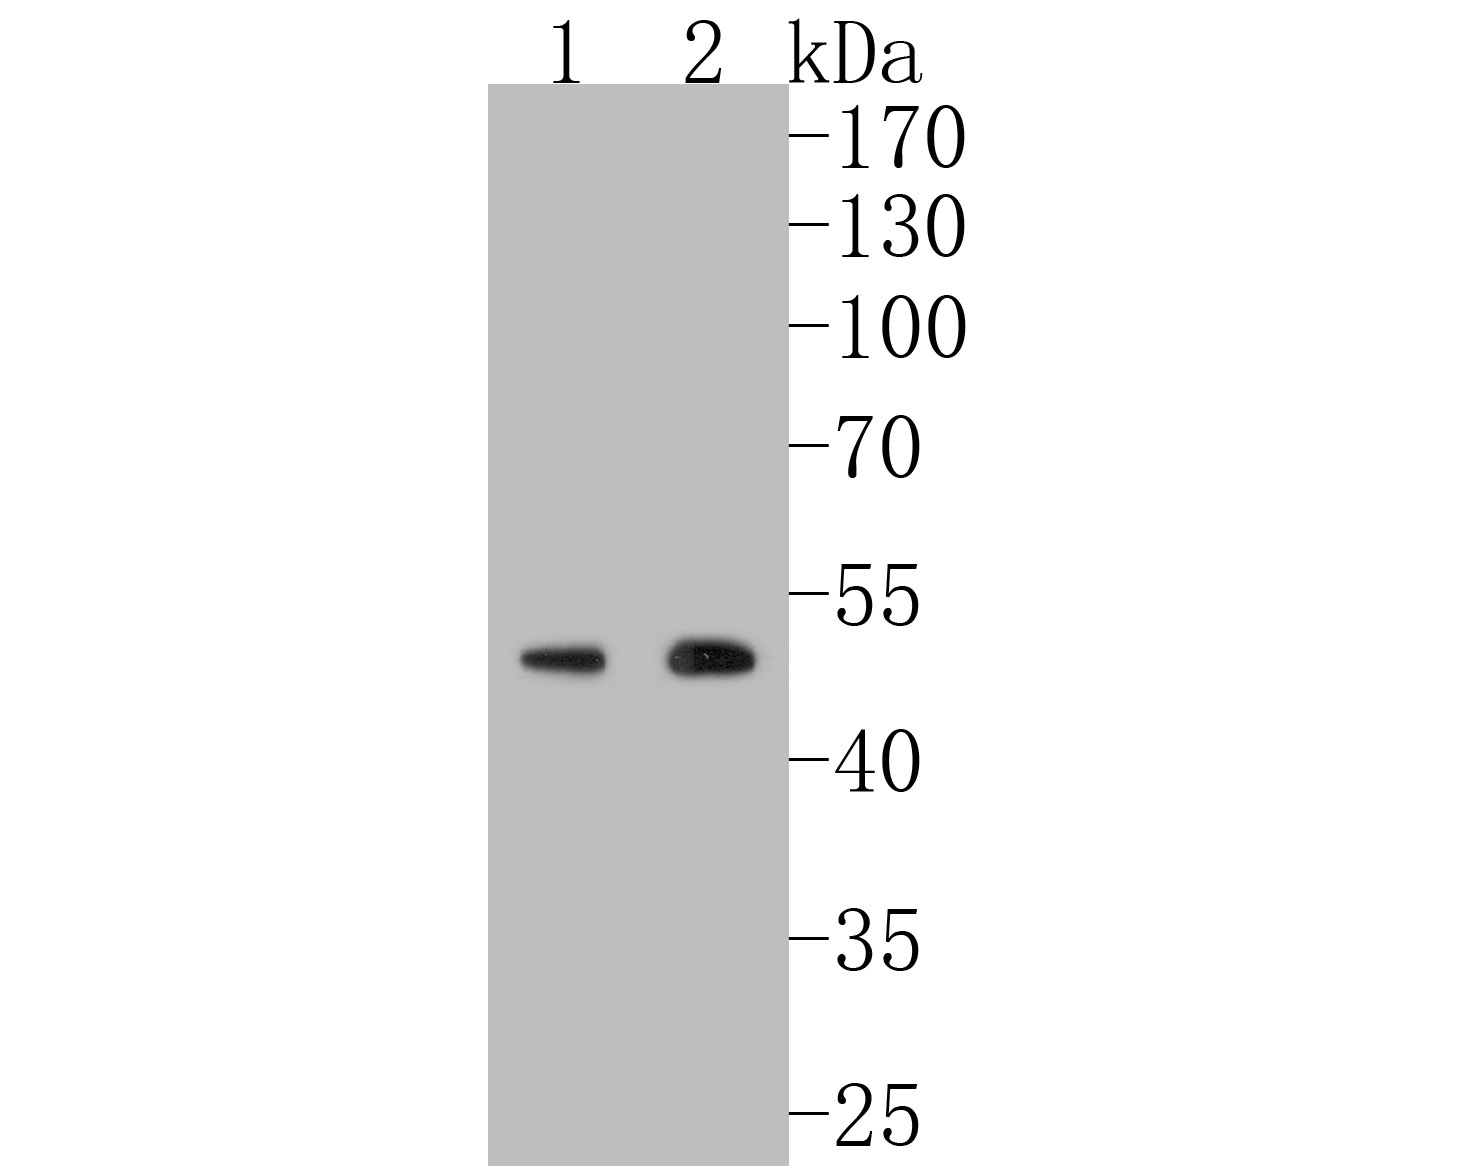 Western blot analysis of HDAC3 on different lysates. Proteins were transferred to a PVDF membrane and blocked with 5% BSA in PBS for 1 hour at room temperature. The primary antibody (ET1610-5, 1/500) was used in 5% BSA at room temperature for 2 hours. Goat Anti-Rabbit IgG - HRP Secondary Antibody (HA1001) at 1:5,000 dilution was used for 1 hour at room temperature.<br />  Positive control: <br />  Lane 1: HL-60 cell lysate<br />  Lane 2: K562 cell lysate